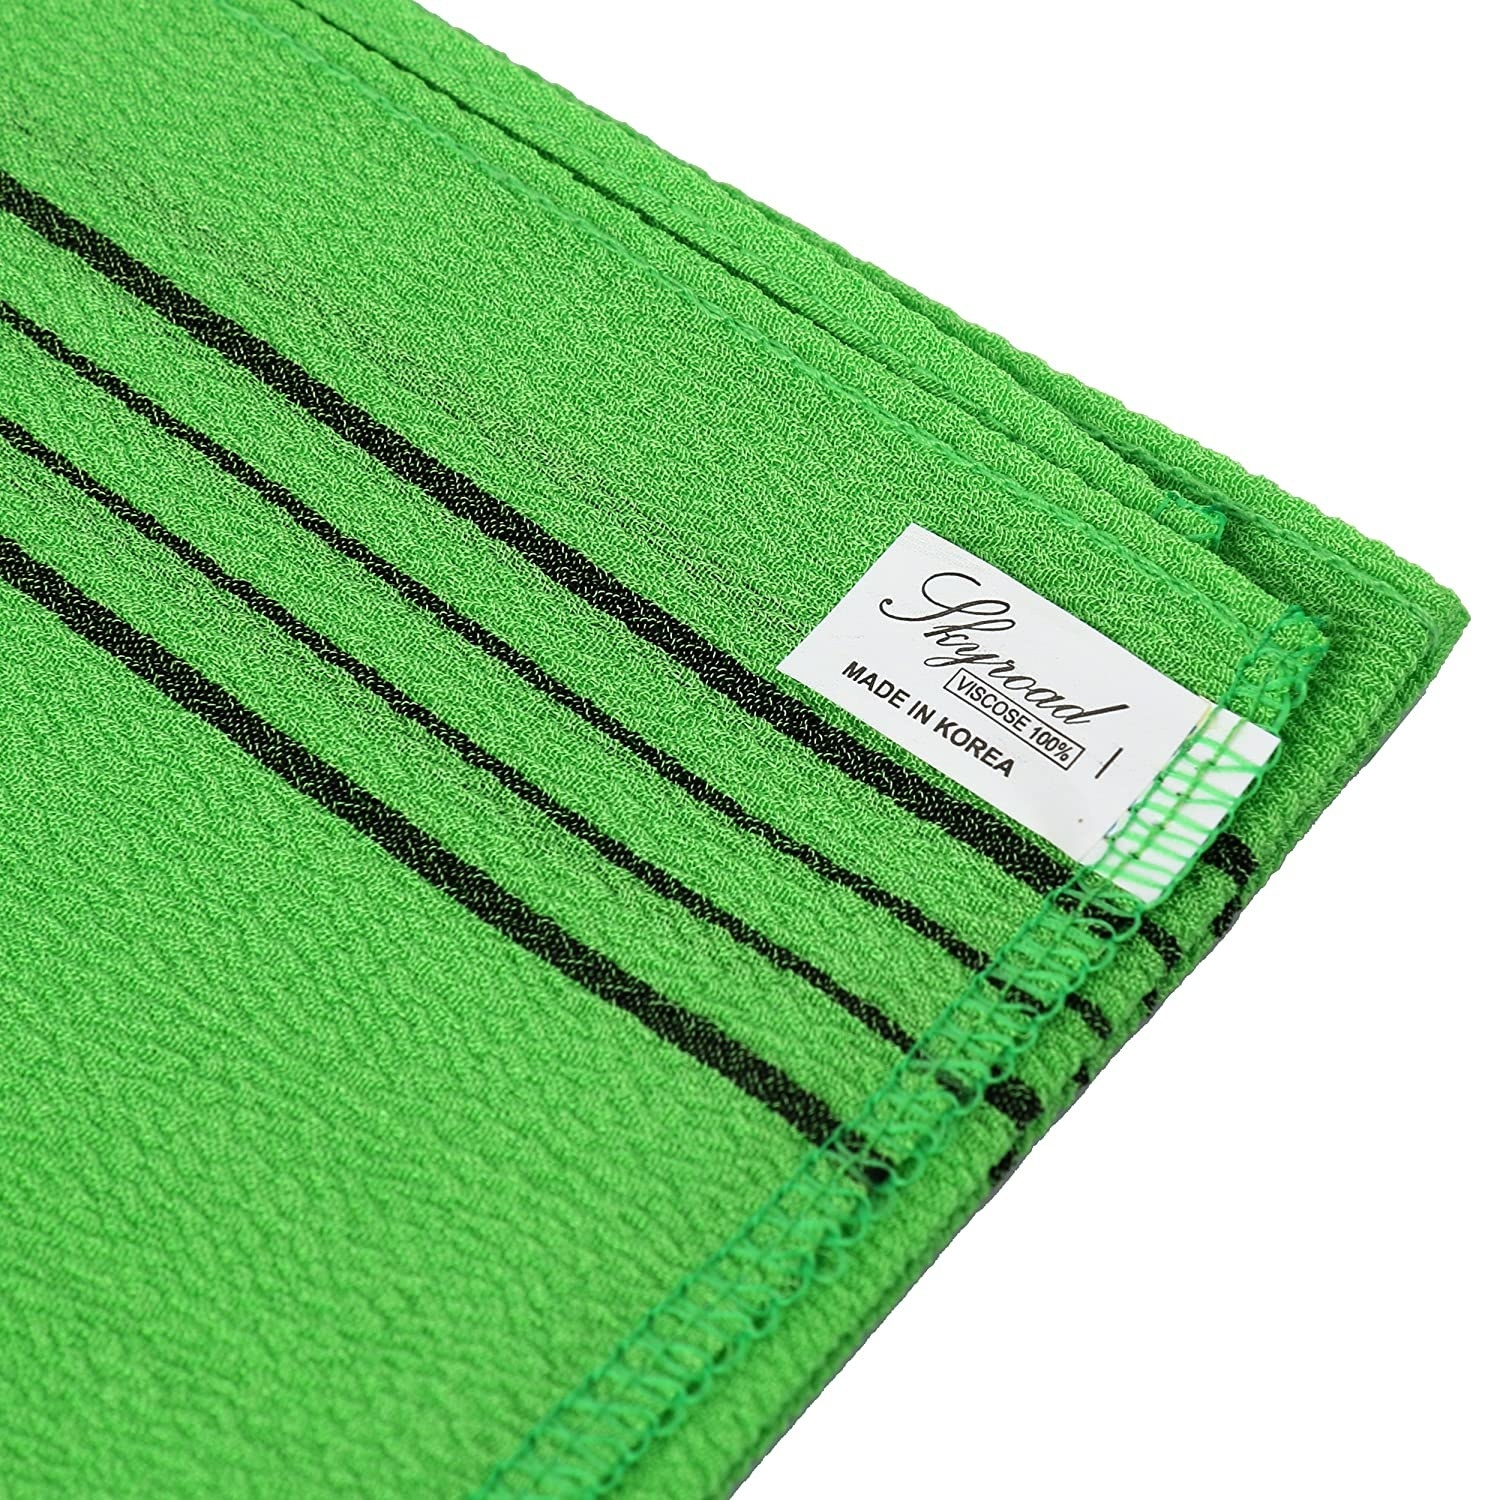 a close-up photo of the green exfoliator